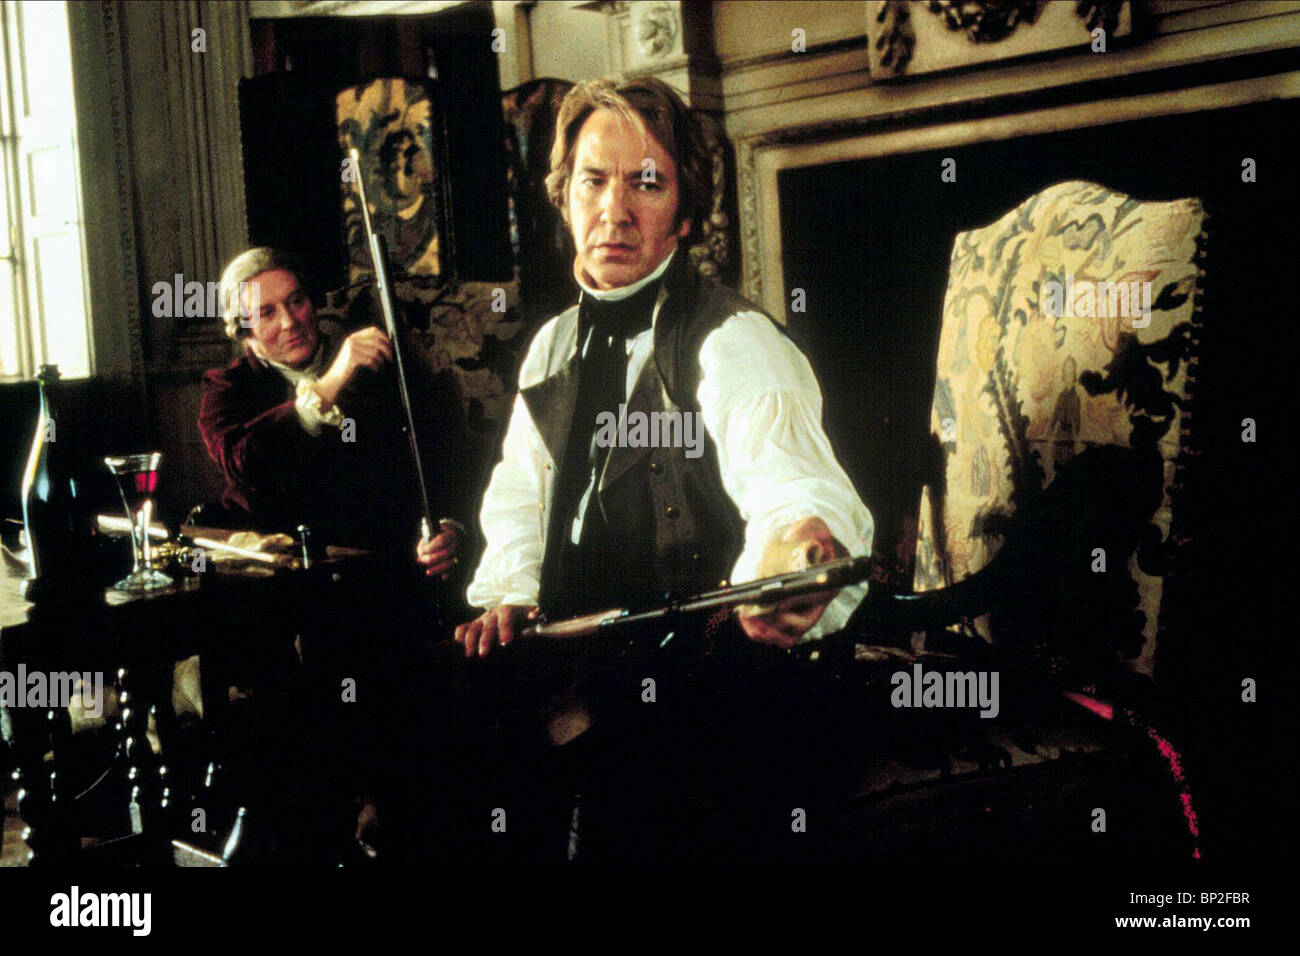 Alan Rickman Sense And Sensibility 1995 Stock Photo